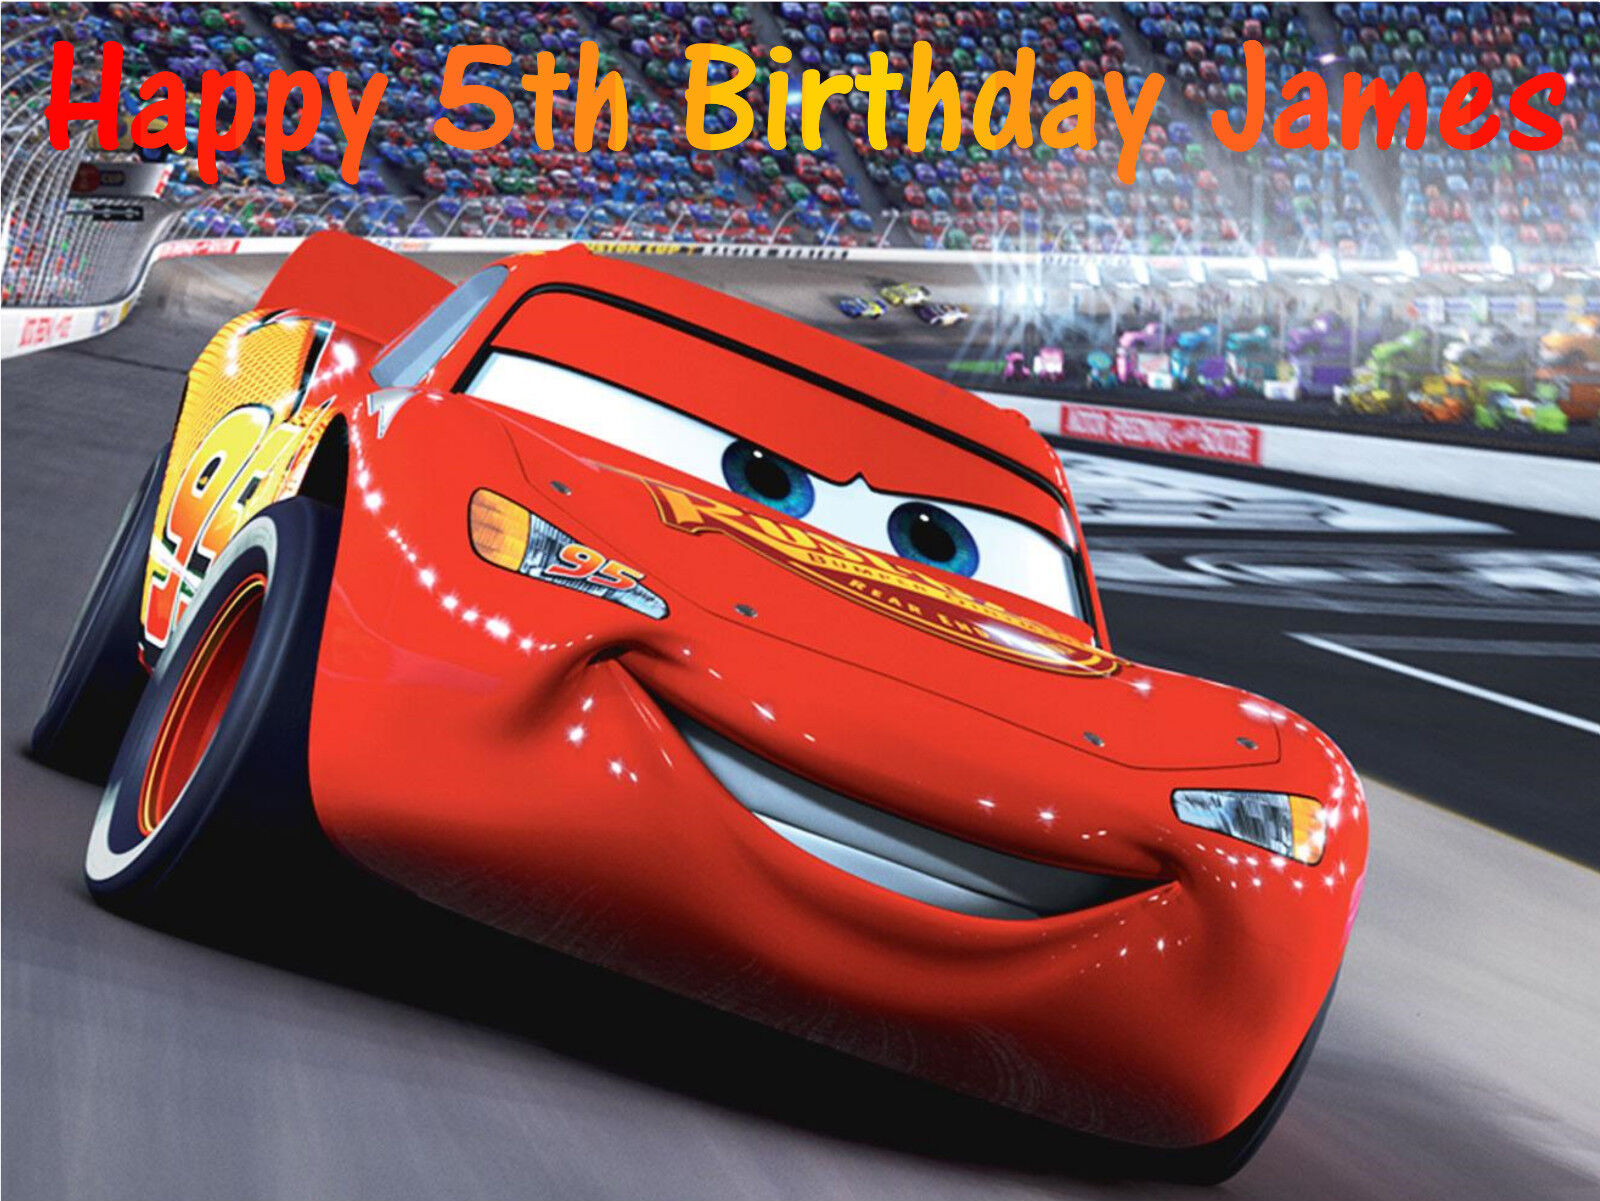 Awe Inspiring Disney Cars Lightning Mcqueen A4 Edible Birthday Cake Topper Funny Birthday Cards Online Alyptdamsfinfo